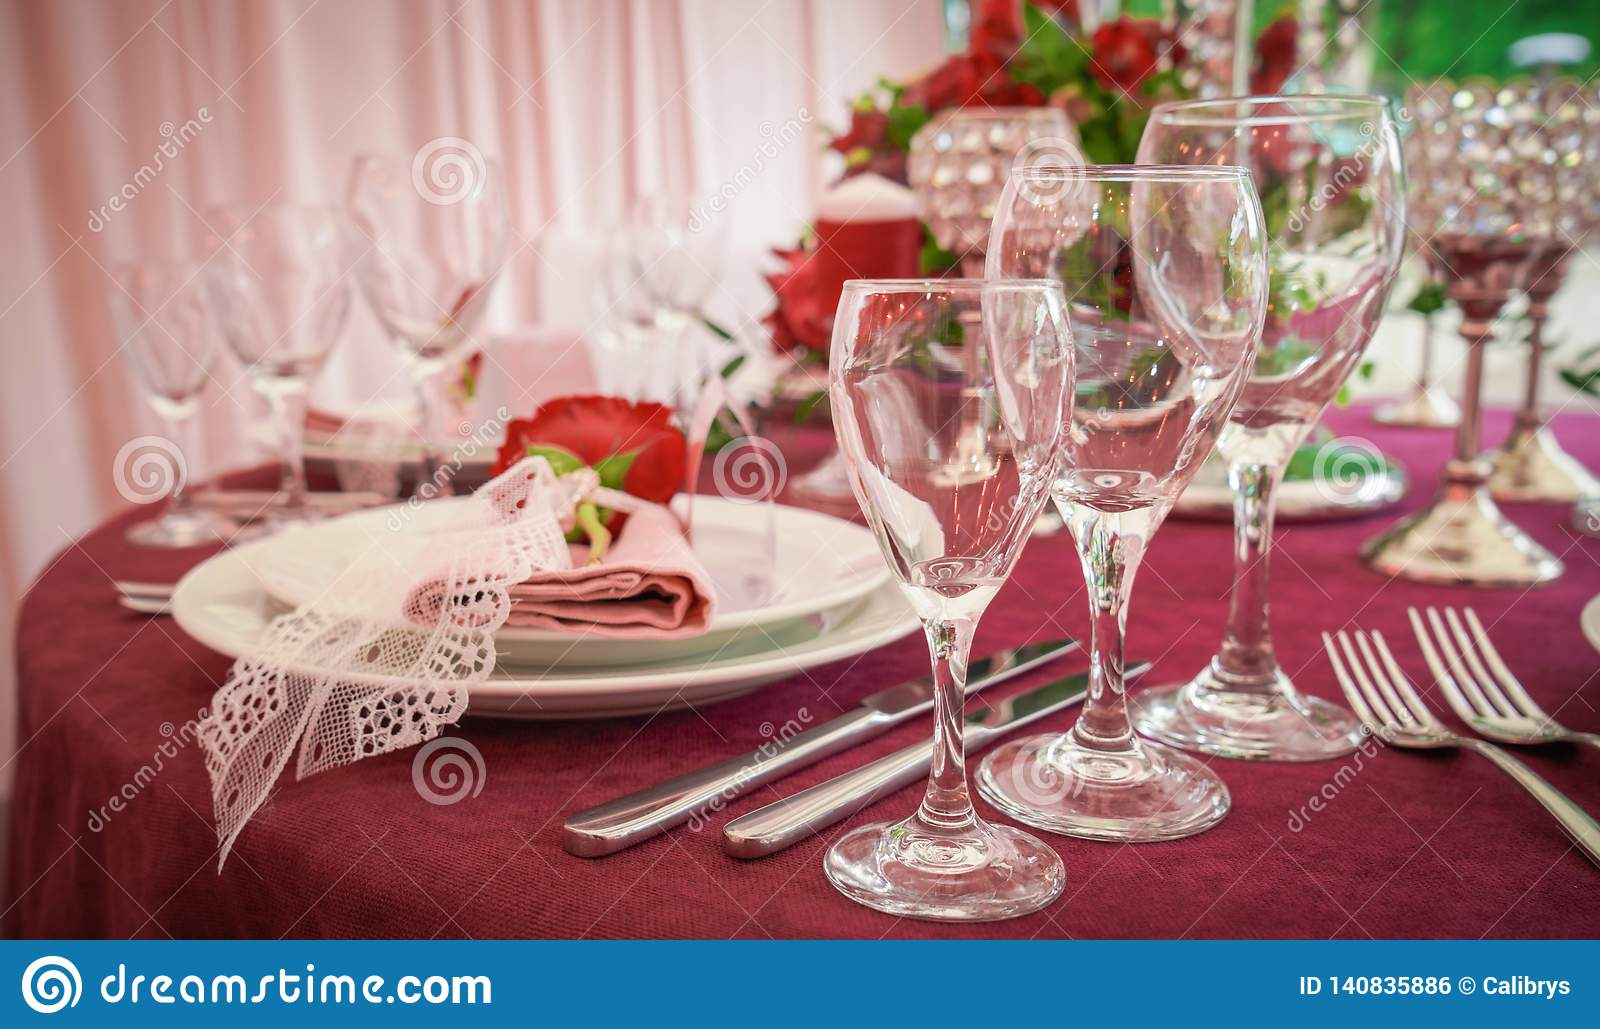 Festive table decoration with red flowers